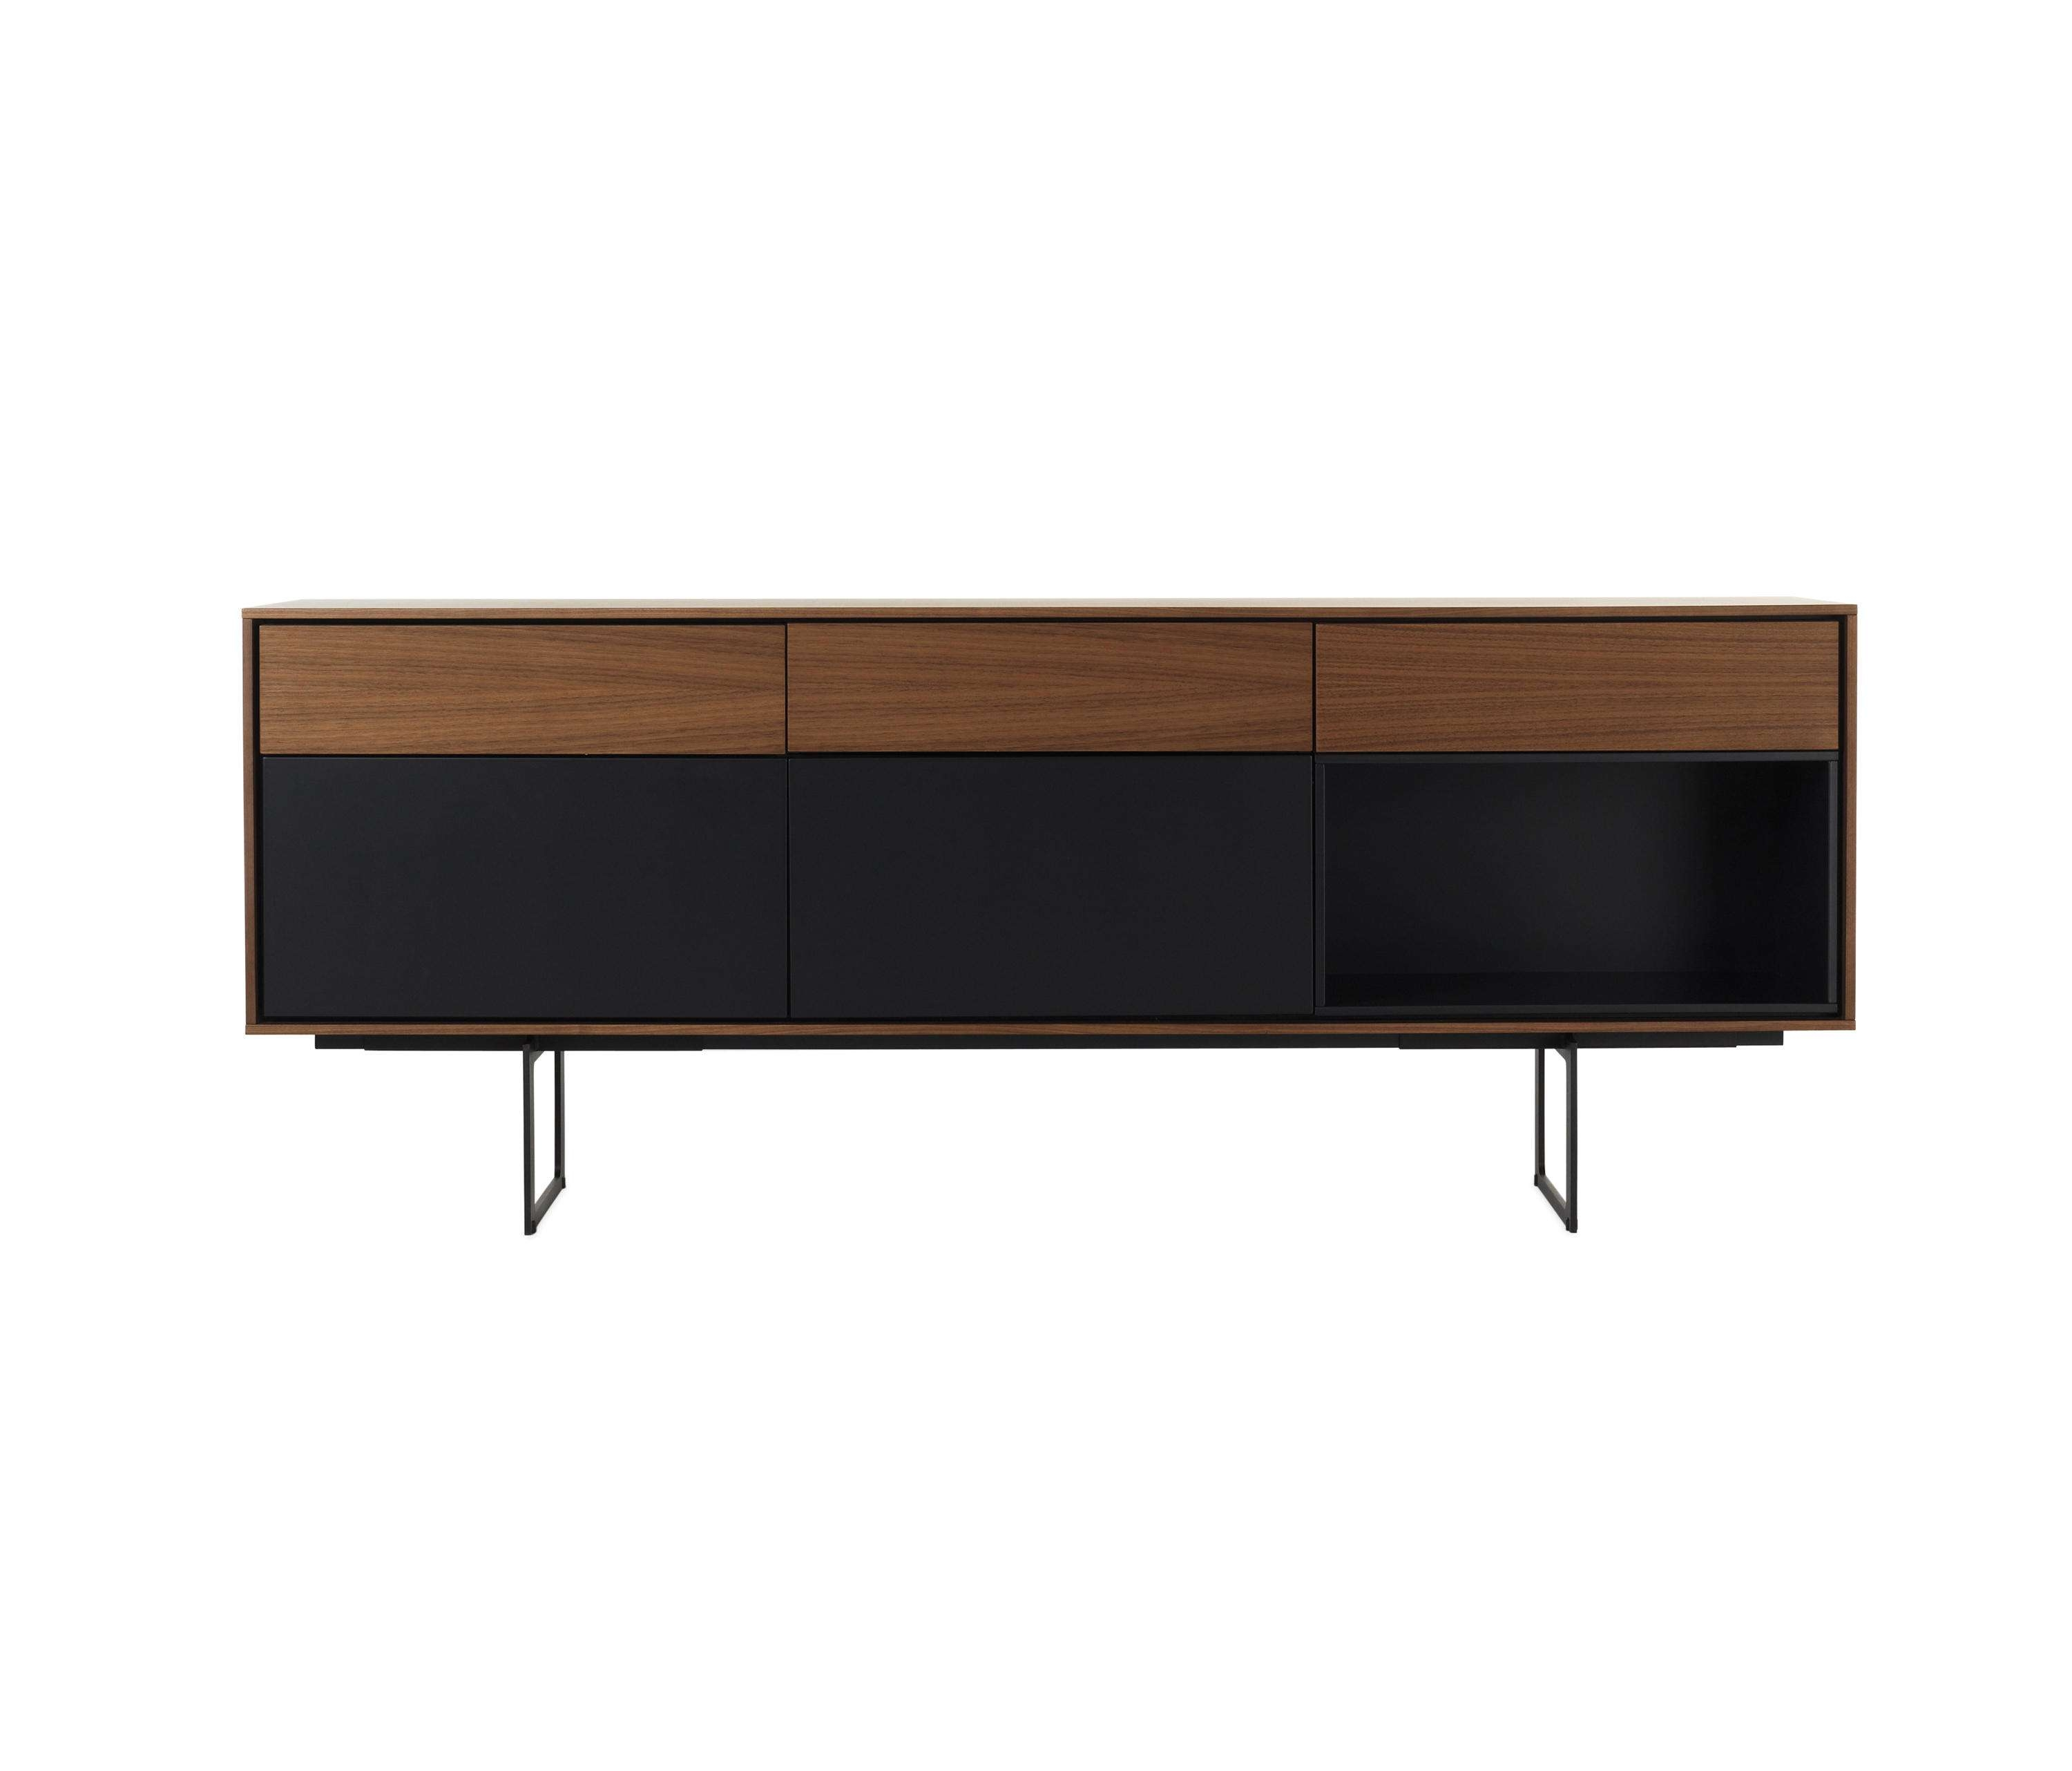 Aura Credenza – Sideboards From Design Within Reach | Architonic With Regard To Media Sideboards (View 17 of 20)